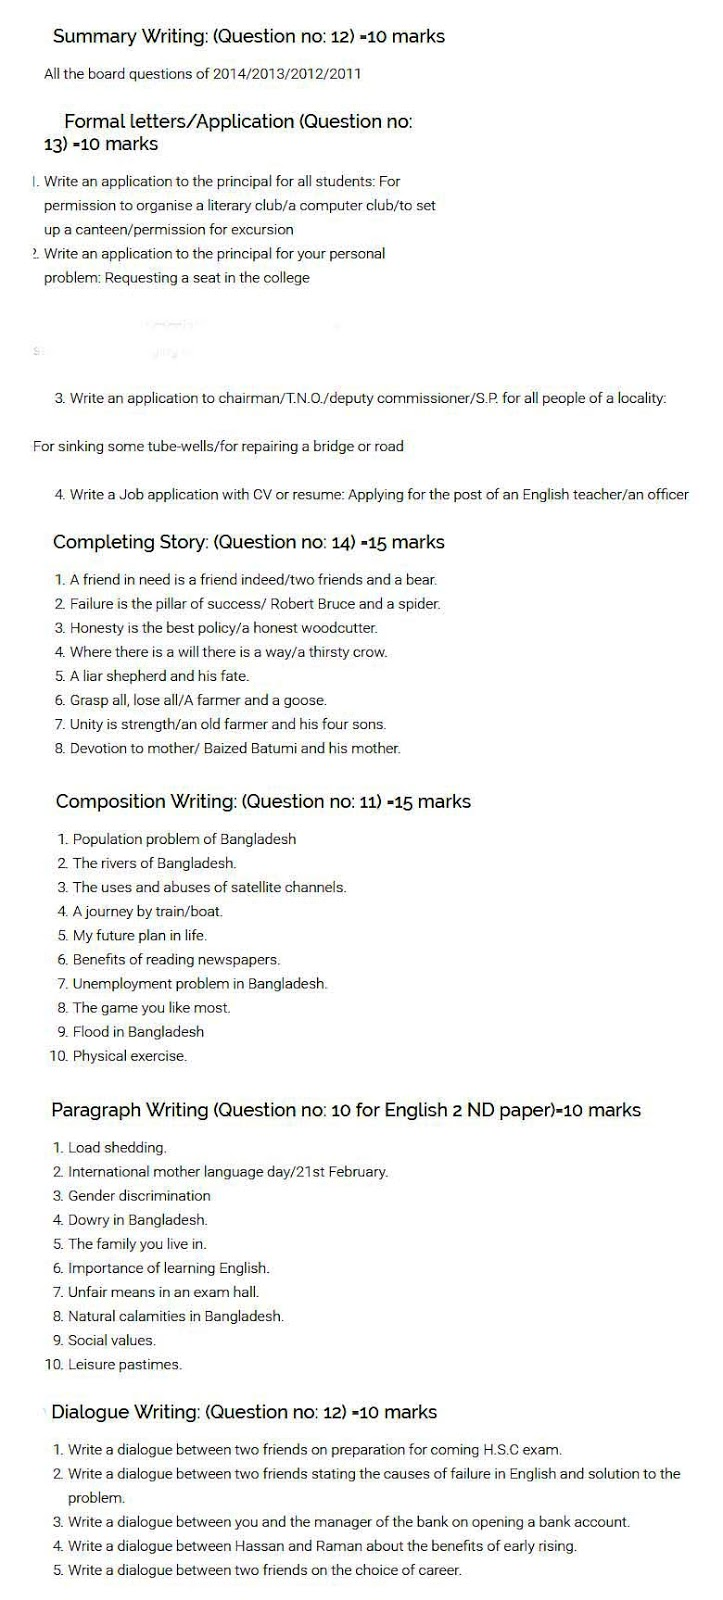 Example Of English Essay Copy Of Business Letter Dowry Essay Word Examples Of Explanation Essay  Hscbenglishbnd Science Essay also Health Care Essay Topics Save Tiger Essay In Telugu About My Life Essay My First Day Of High School Essay